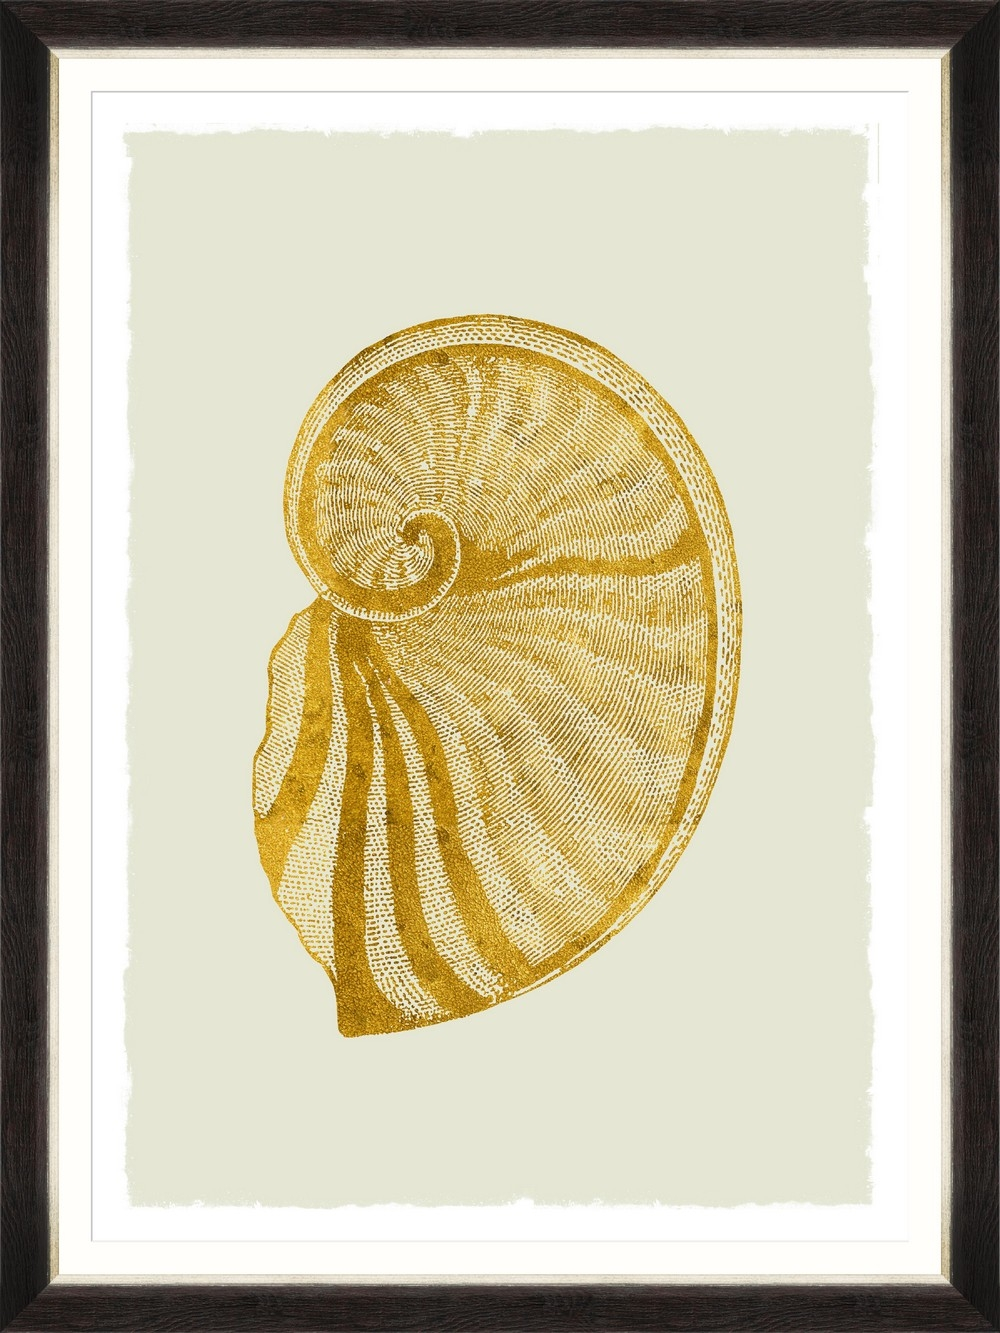 Tablou Framed Art Golden Seashell VI imagine